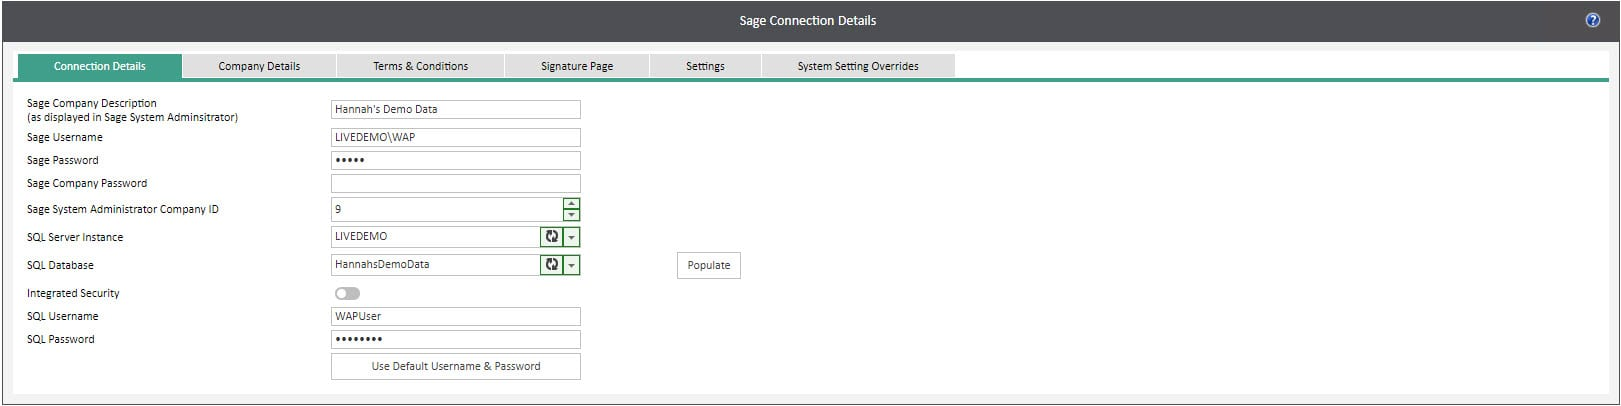 Sicon WAP System Settings Help and User Guide - WAP System HUG Section 29.1 Image 1